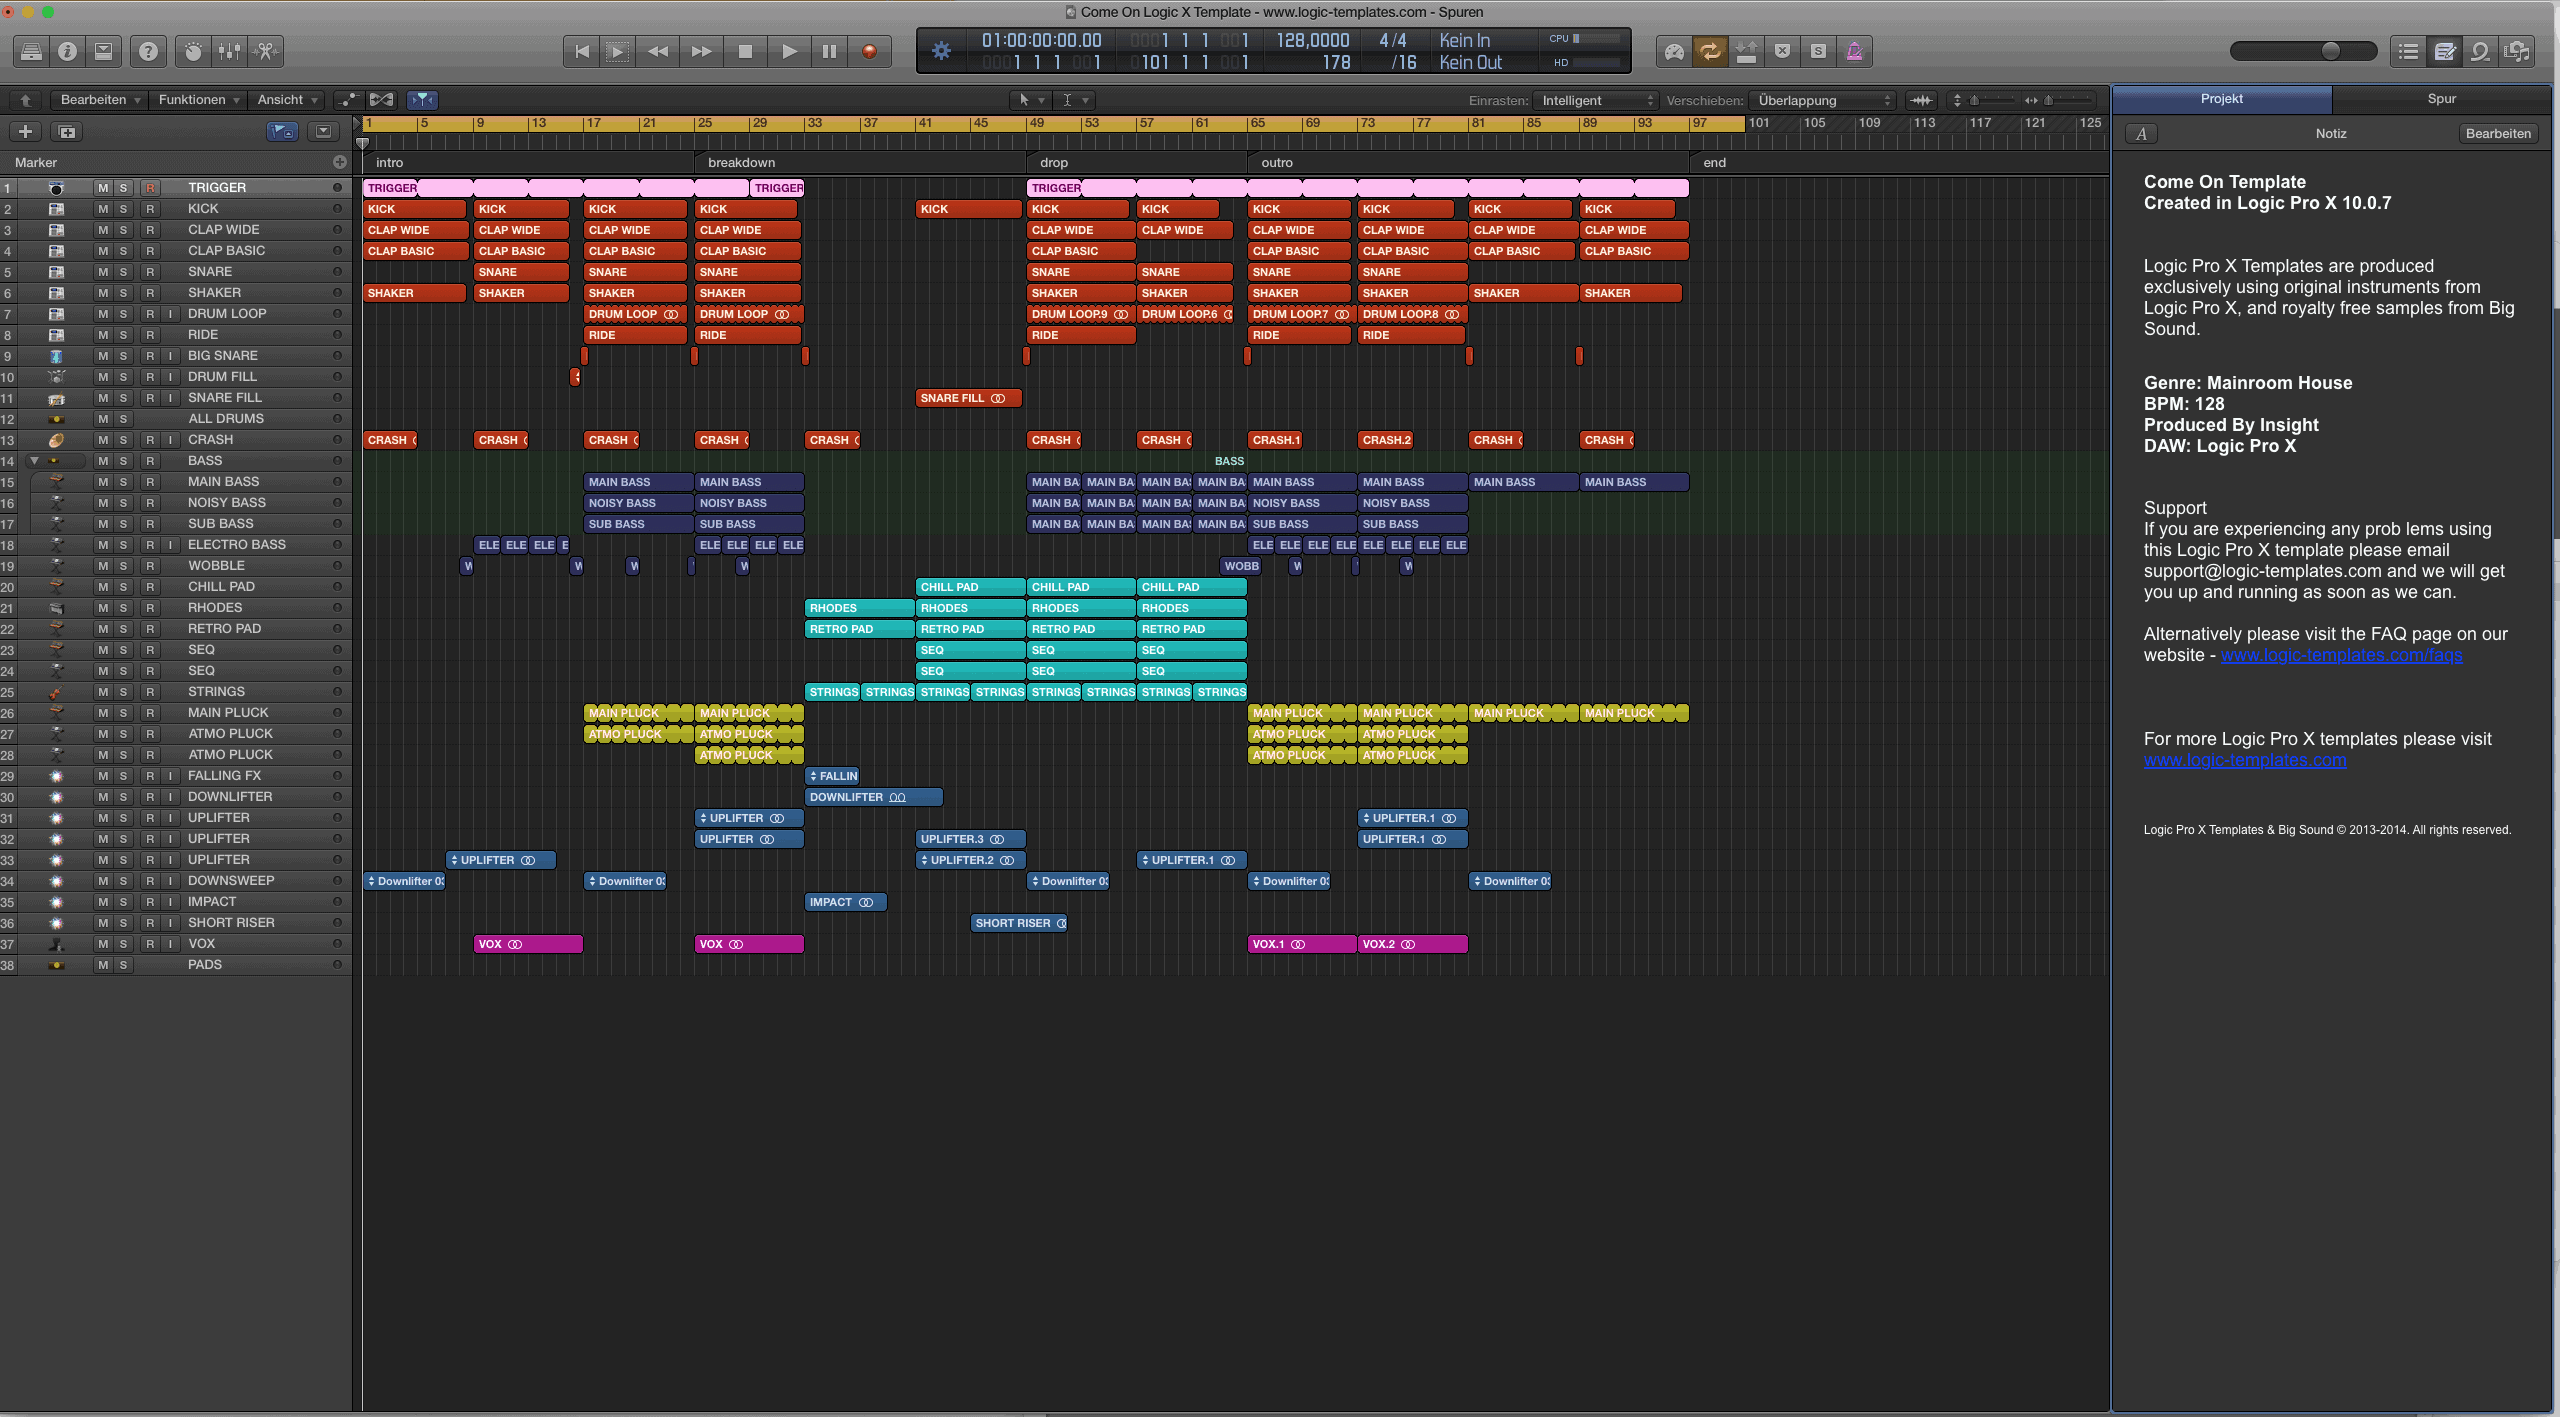 Come On Logic Pro X Template